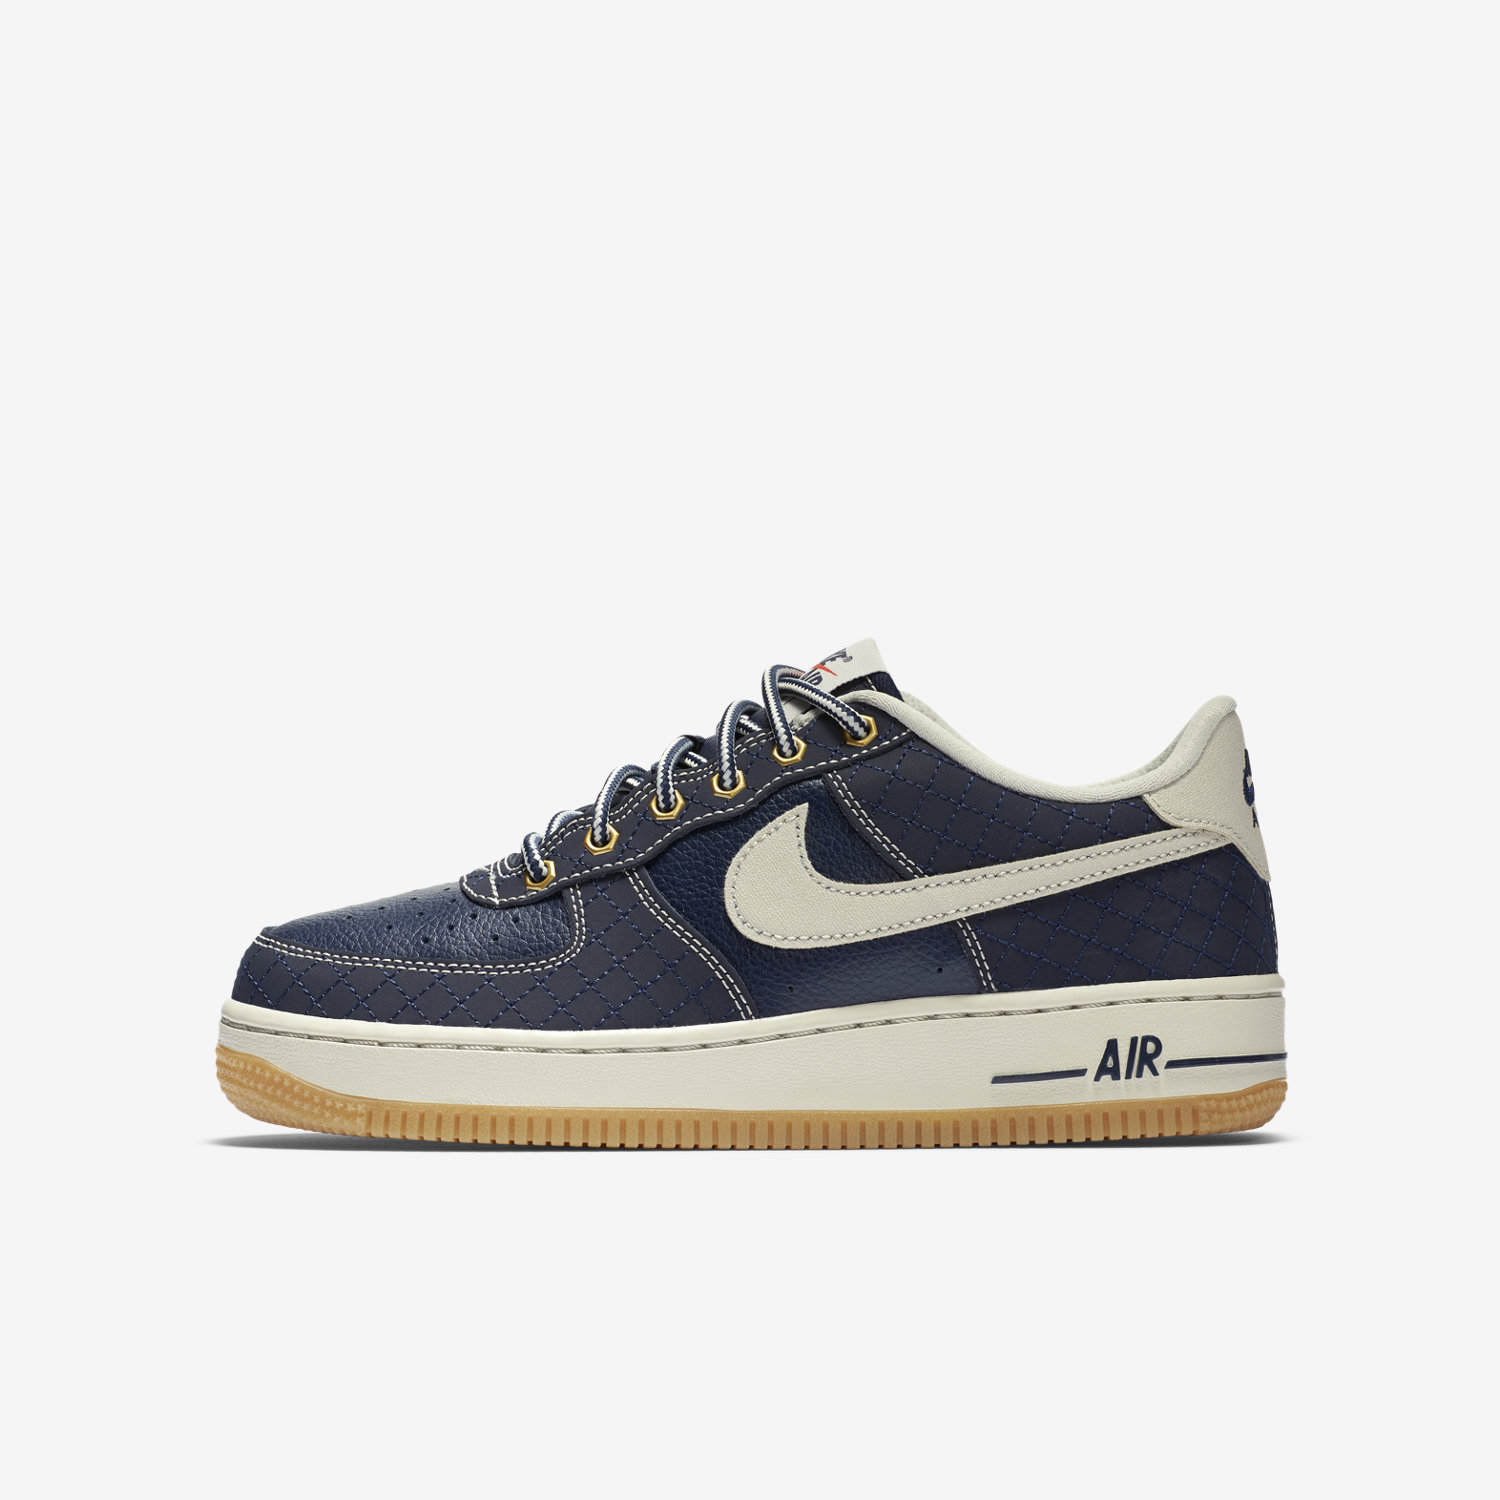 Zapatillas Air Force One Mujer Chile